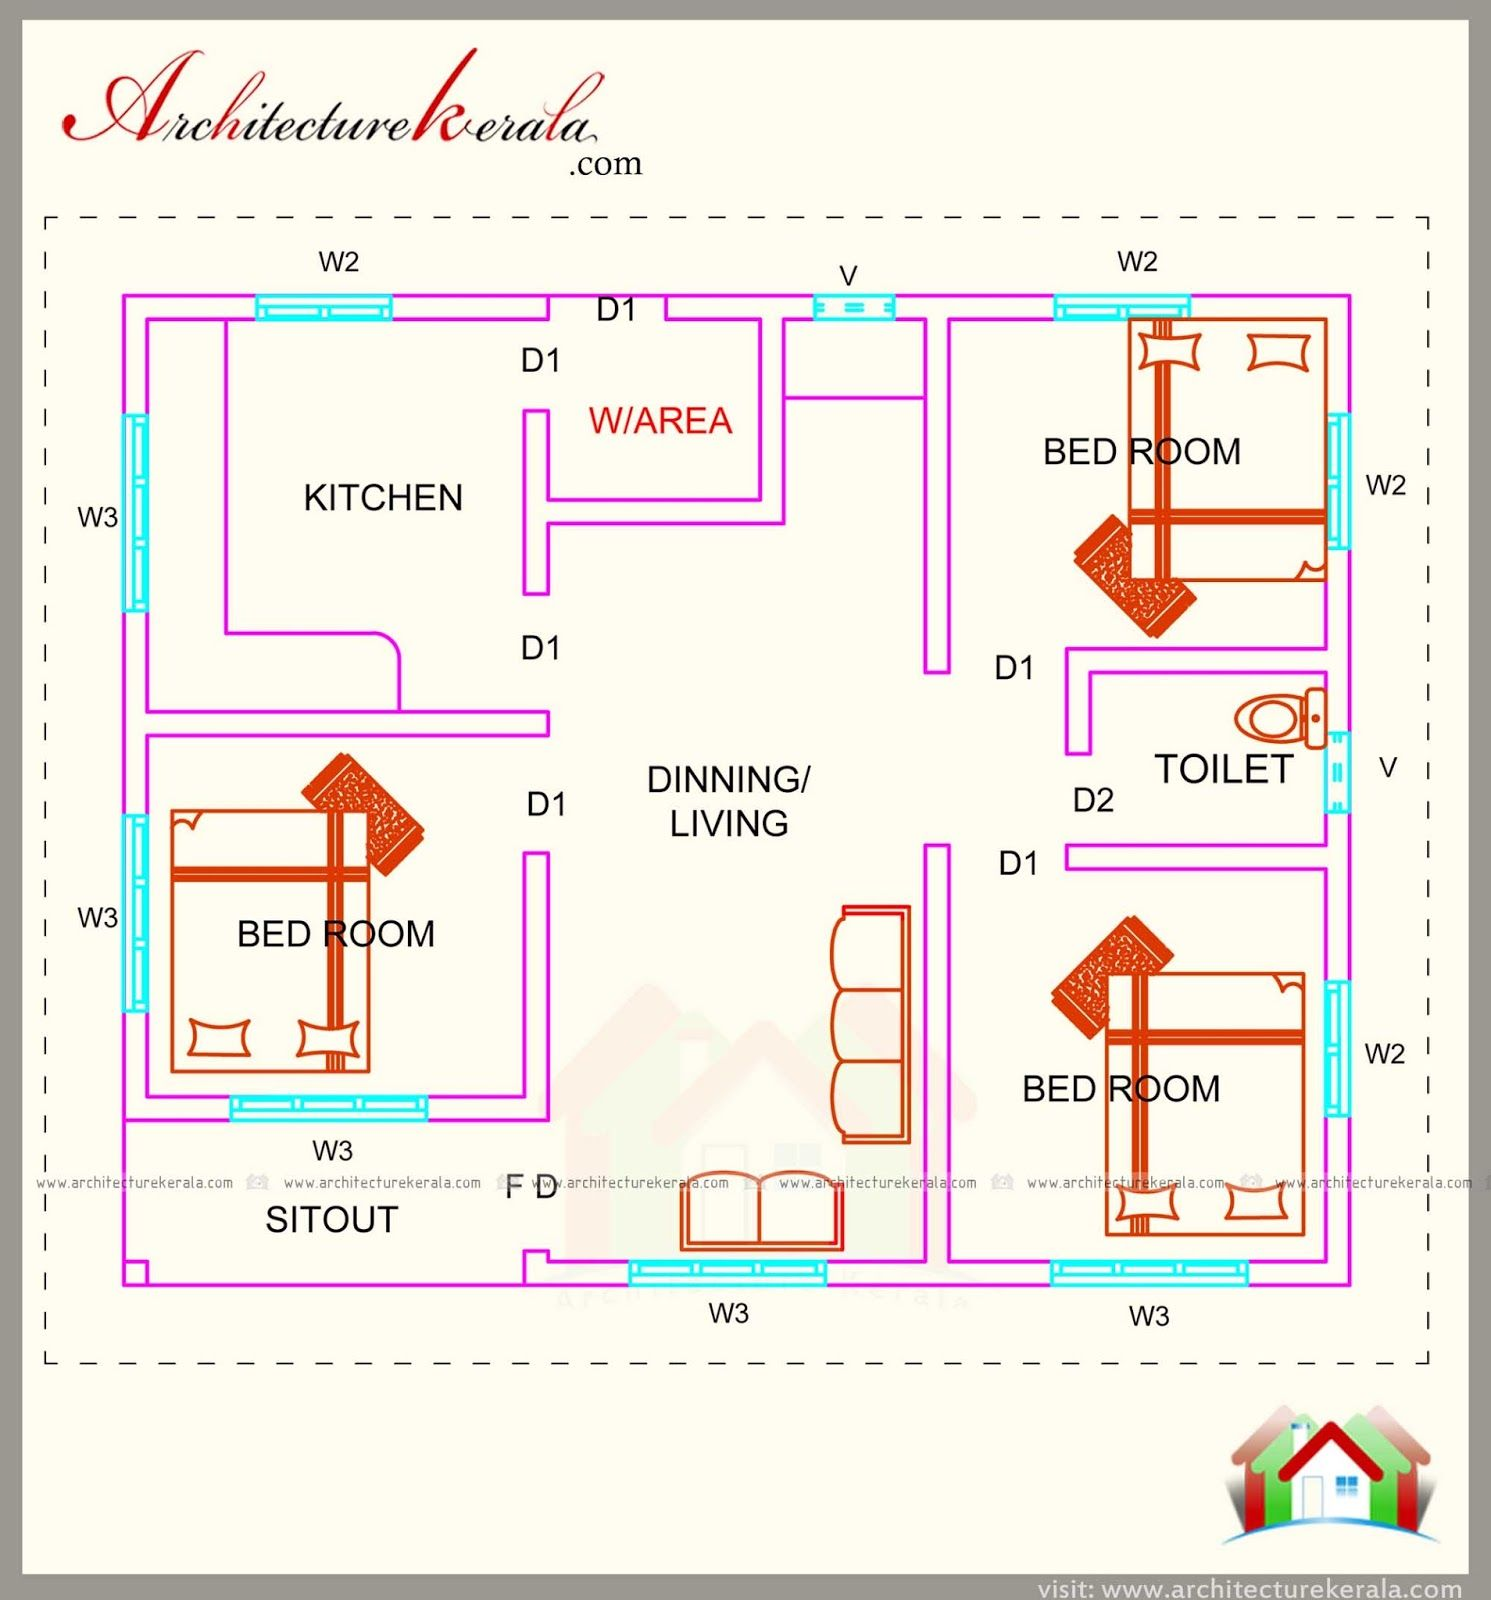 760 Square Feet 3 Bedroom House Plan Architecture Kerala Bedroom House Plans Rustic House Plans Bedroom Floor Plans